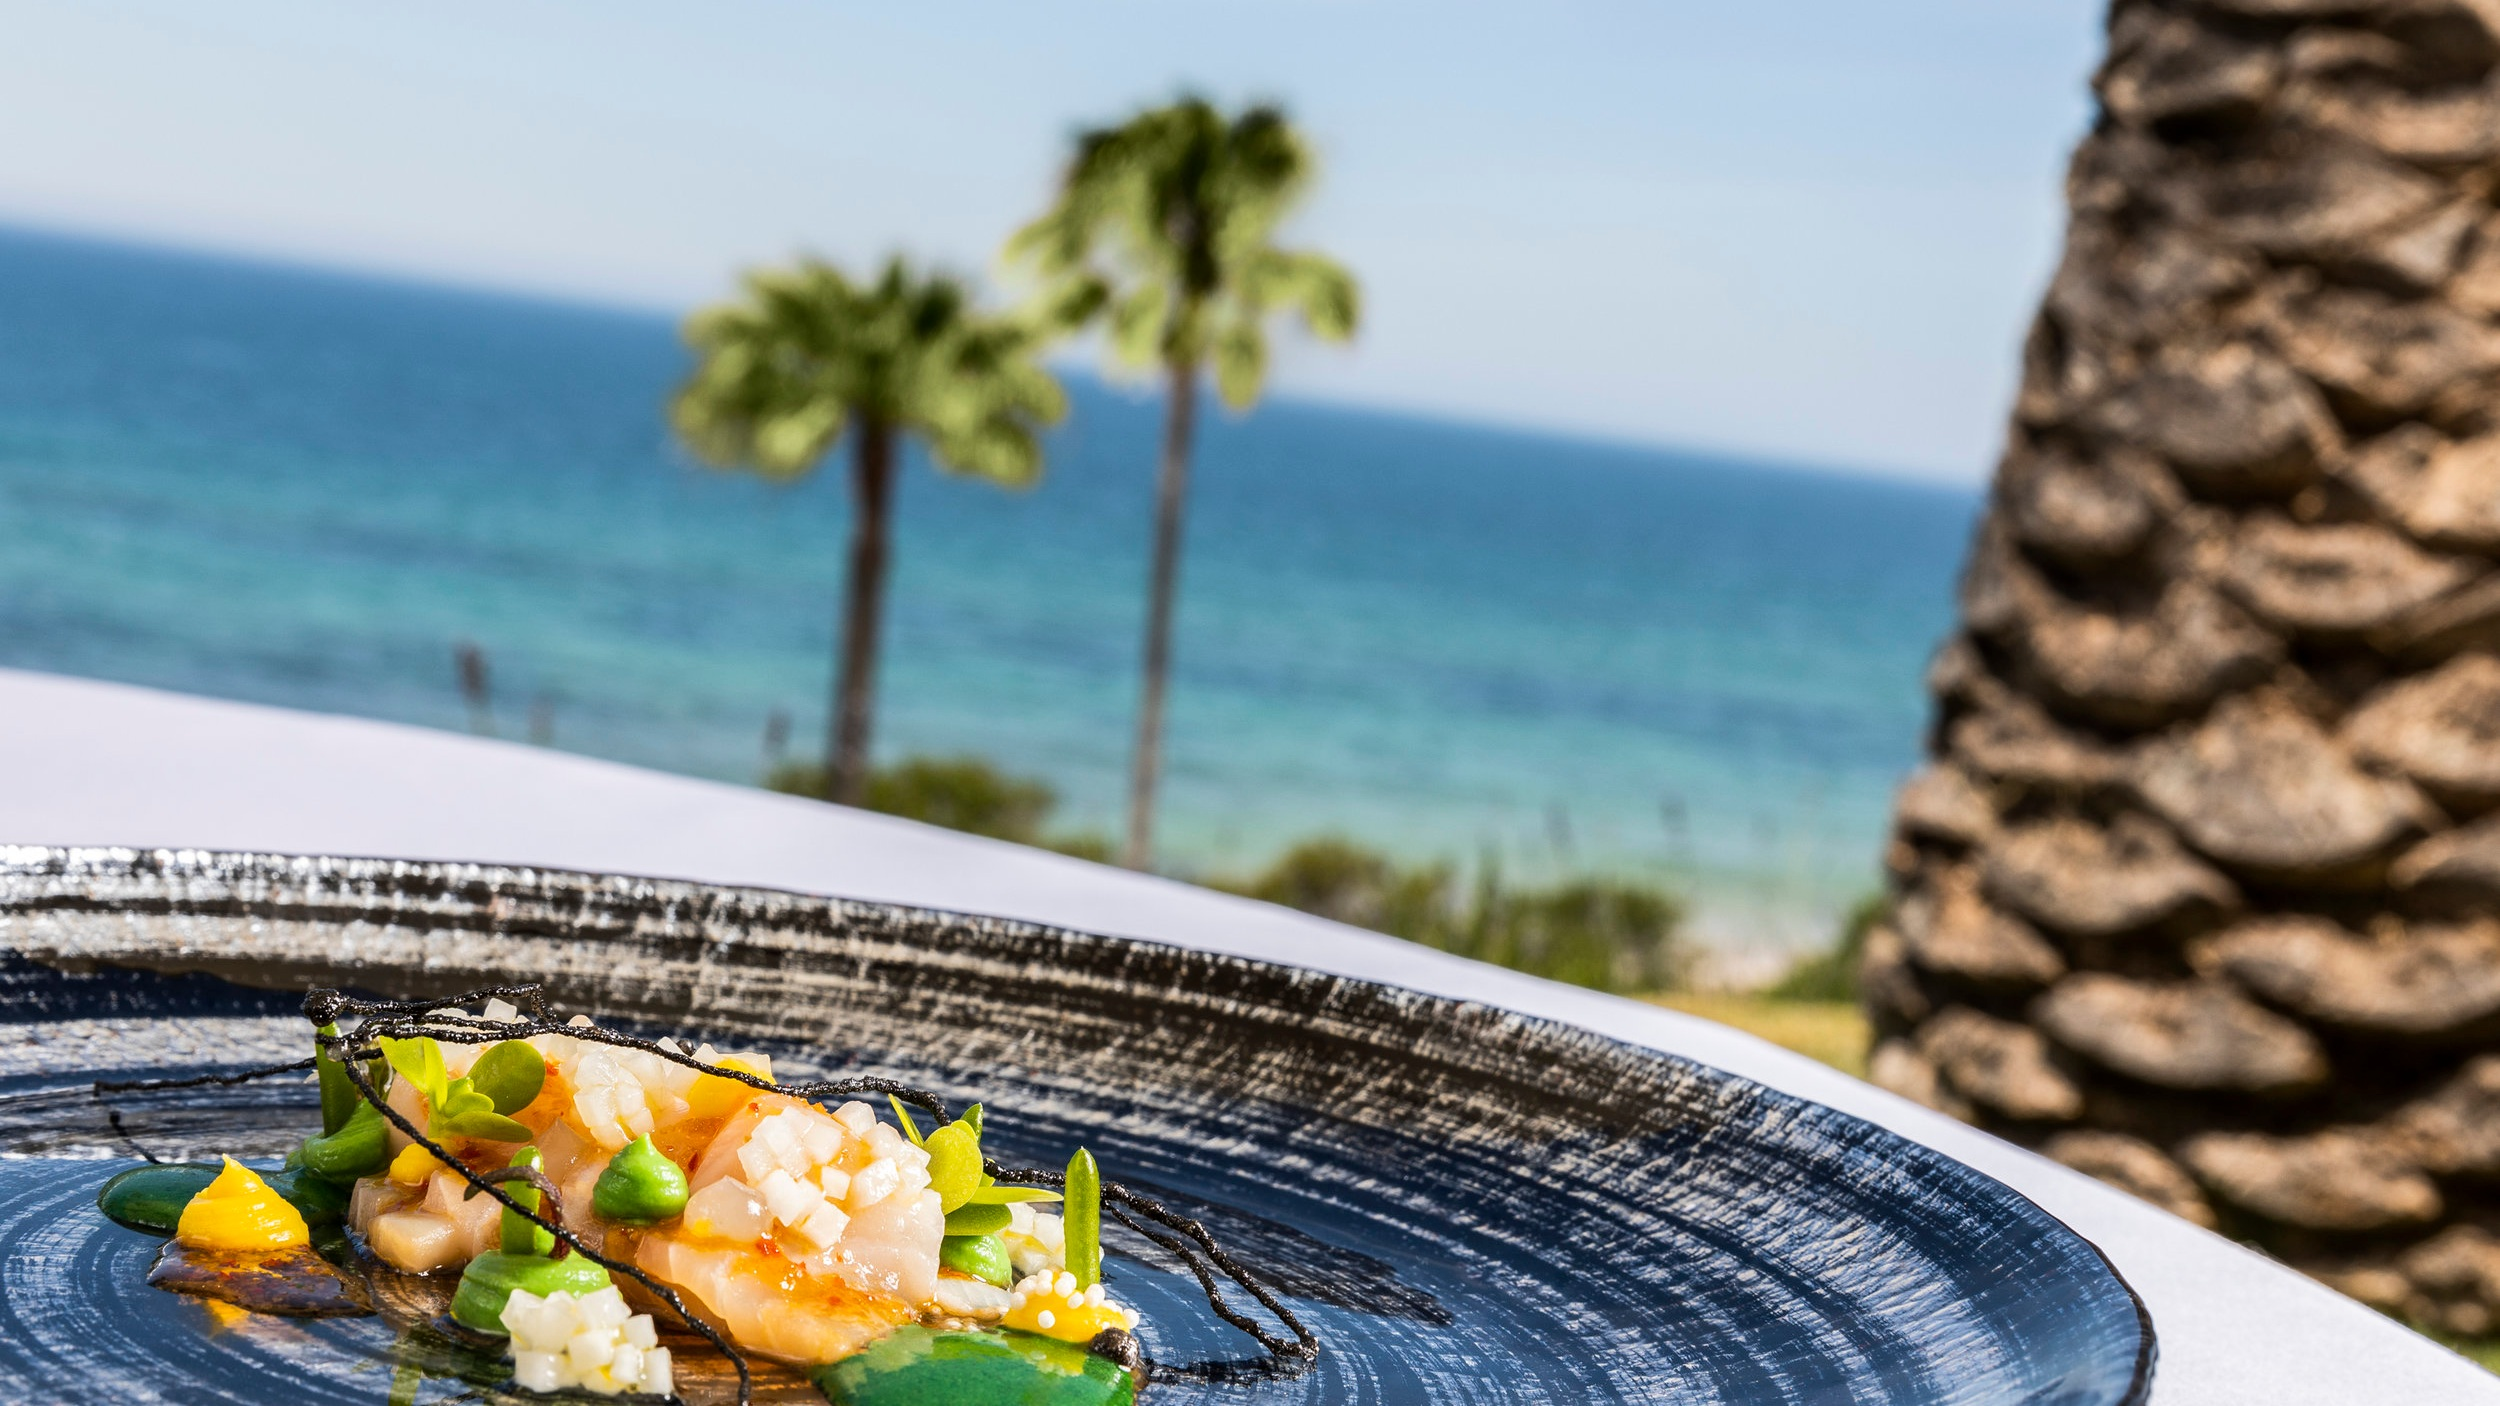 THE MICHELIN STAR FOODIE EXPERIENCE IN THE ALGARVE -